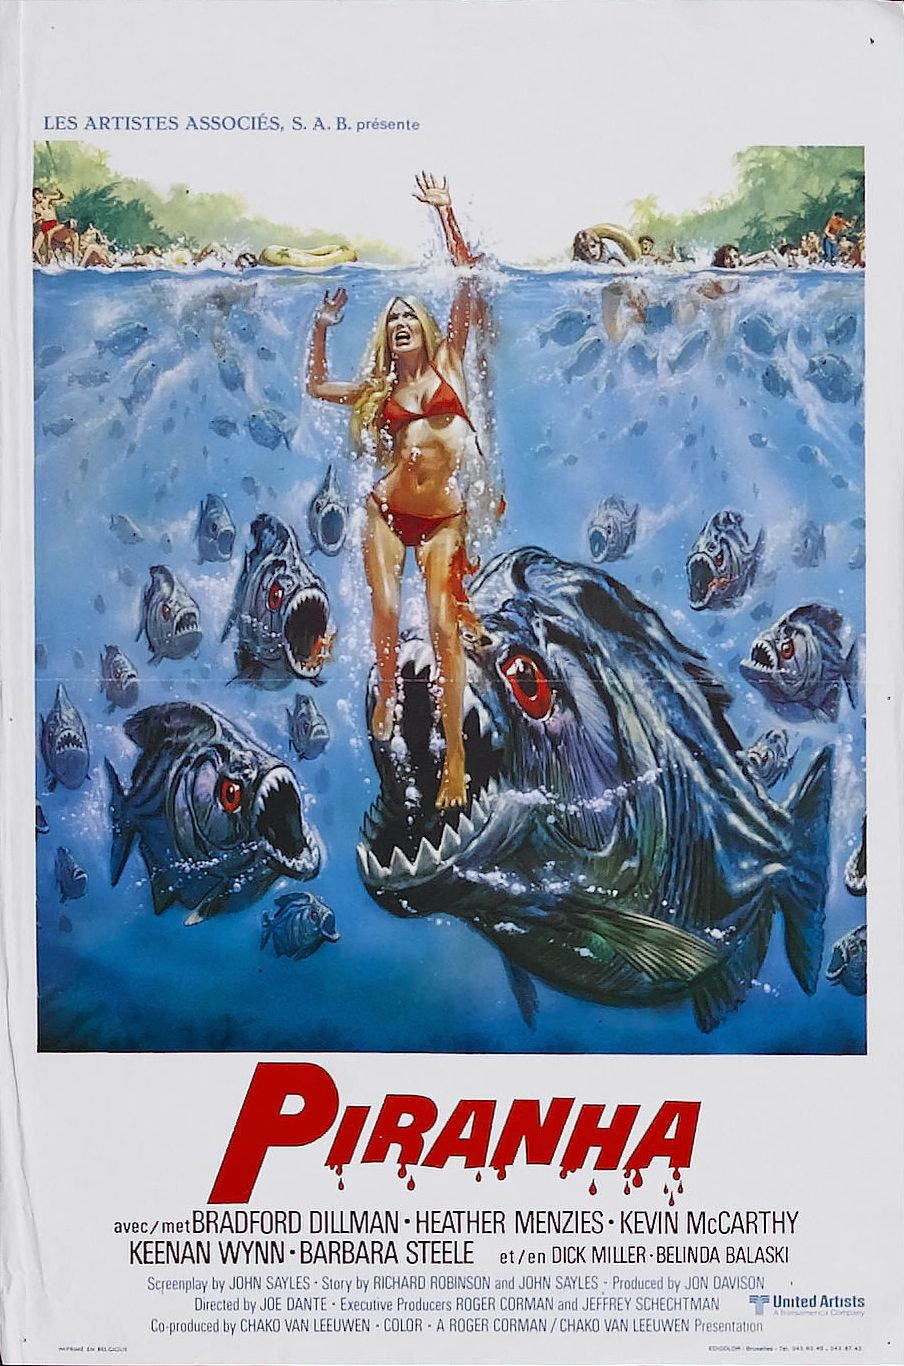 http://www.arte.tv/sites/fr/olivierpere/files/2013/04/piranha_poster_02.jpg